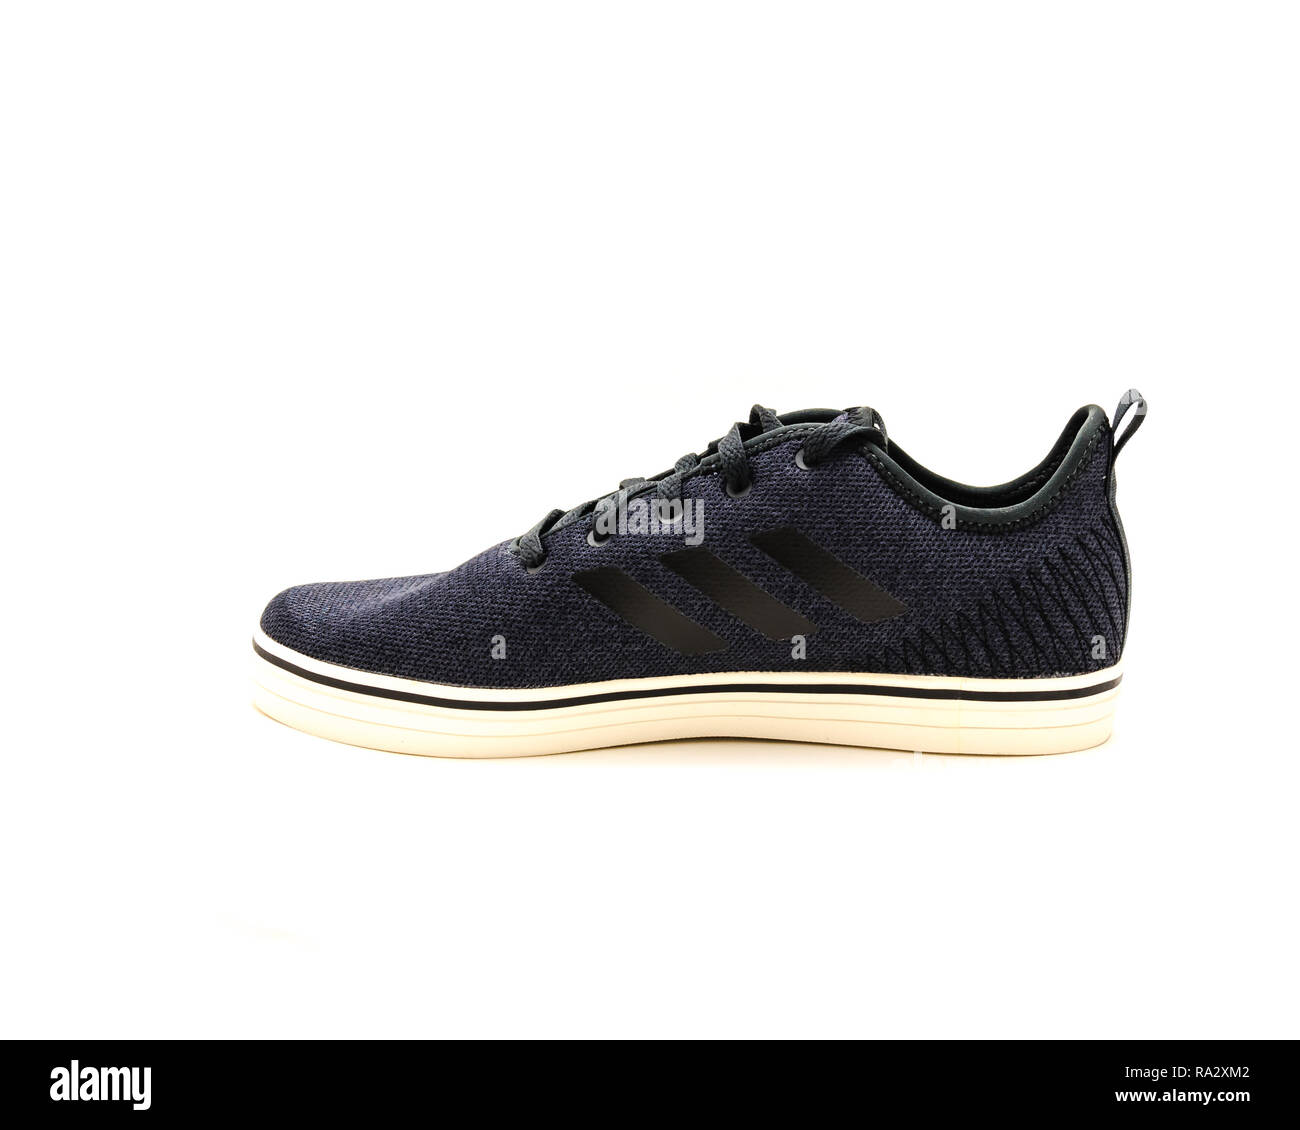 Studio shot brand new dark gray men sneaker shoes isolated Stock Photo